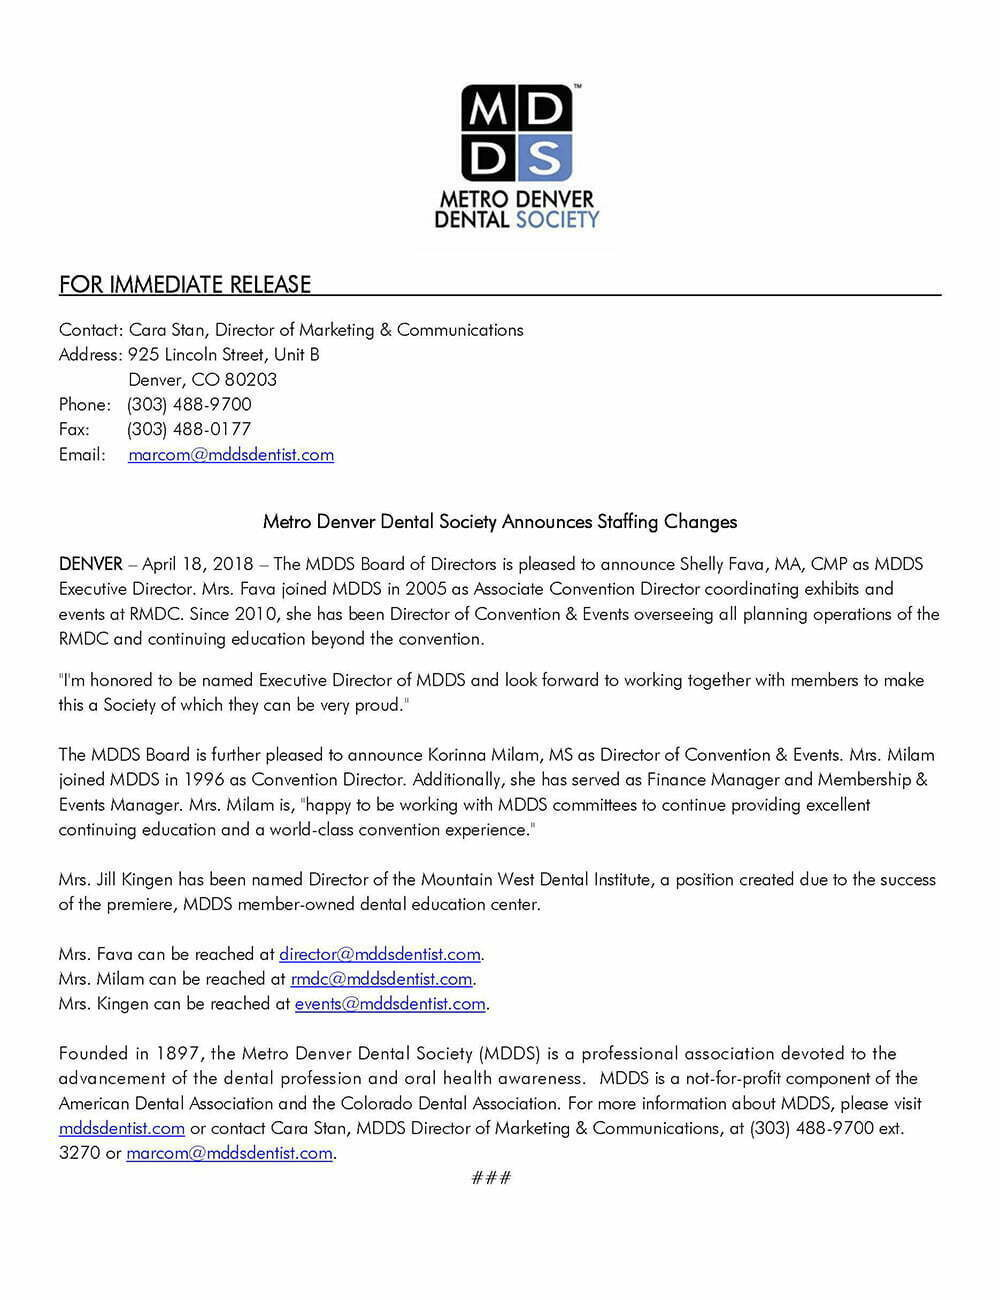 Press Release: Metro Denver Dental Society Announces Staffing Changes